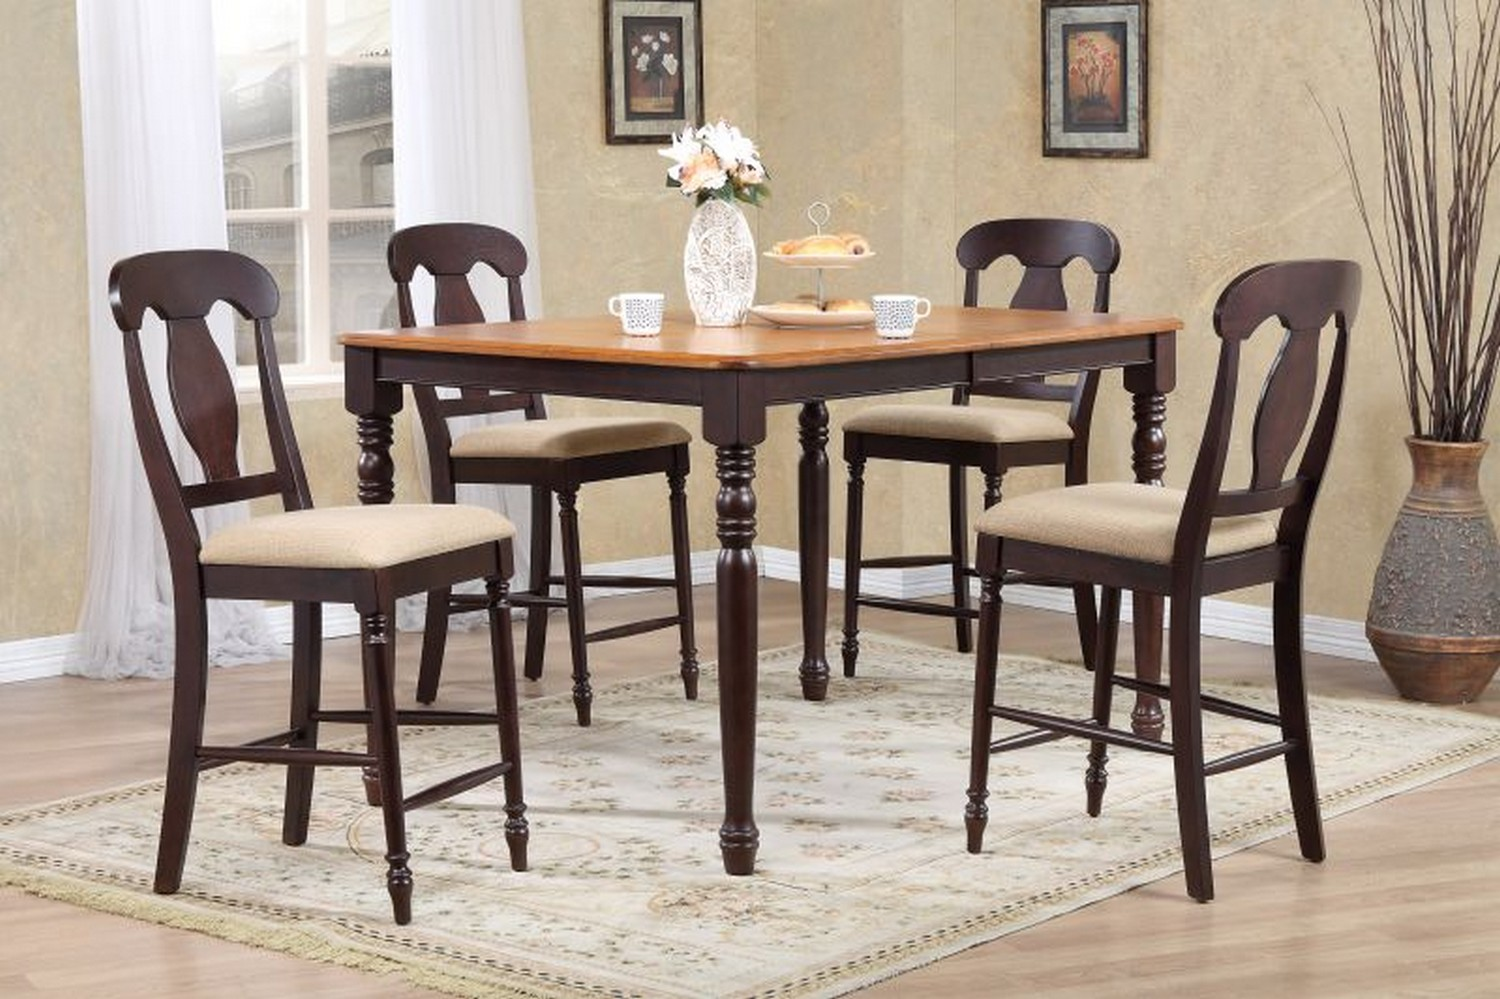 Iconic Furniture RT67 Whiskey/Mocha Napoleon Back Counter Height Dining Set